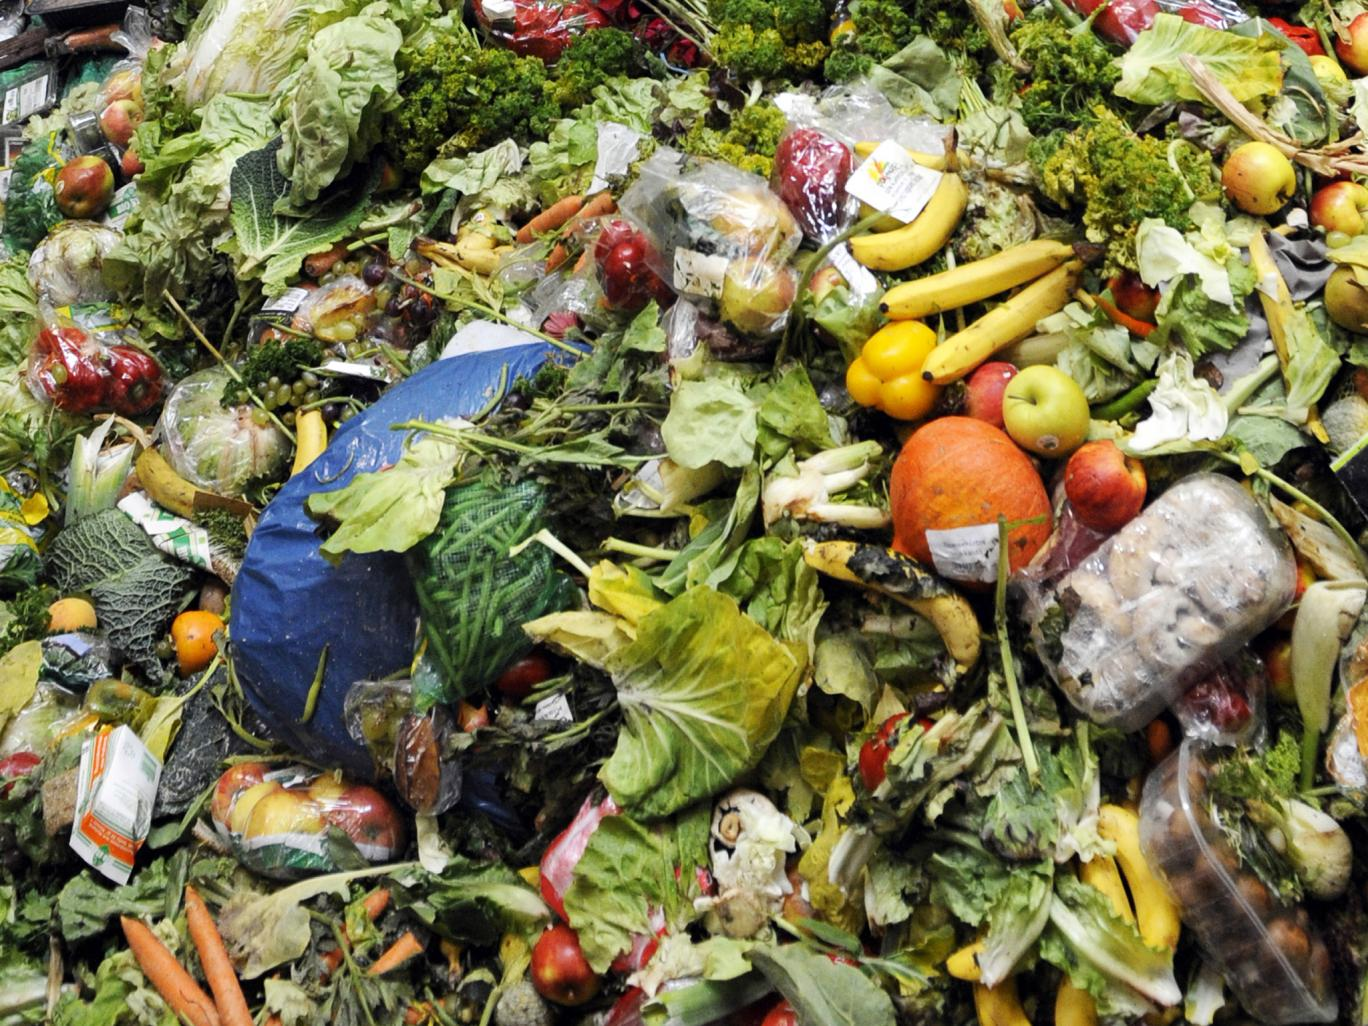 French food waste legislation was passed in February, while legislation in Italy is expected by 2016